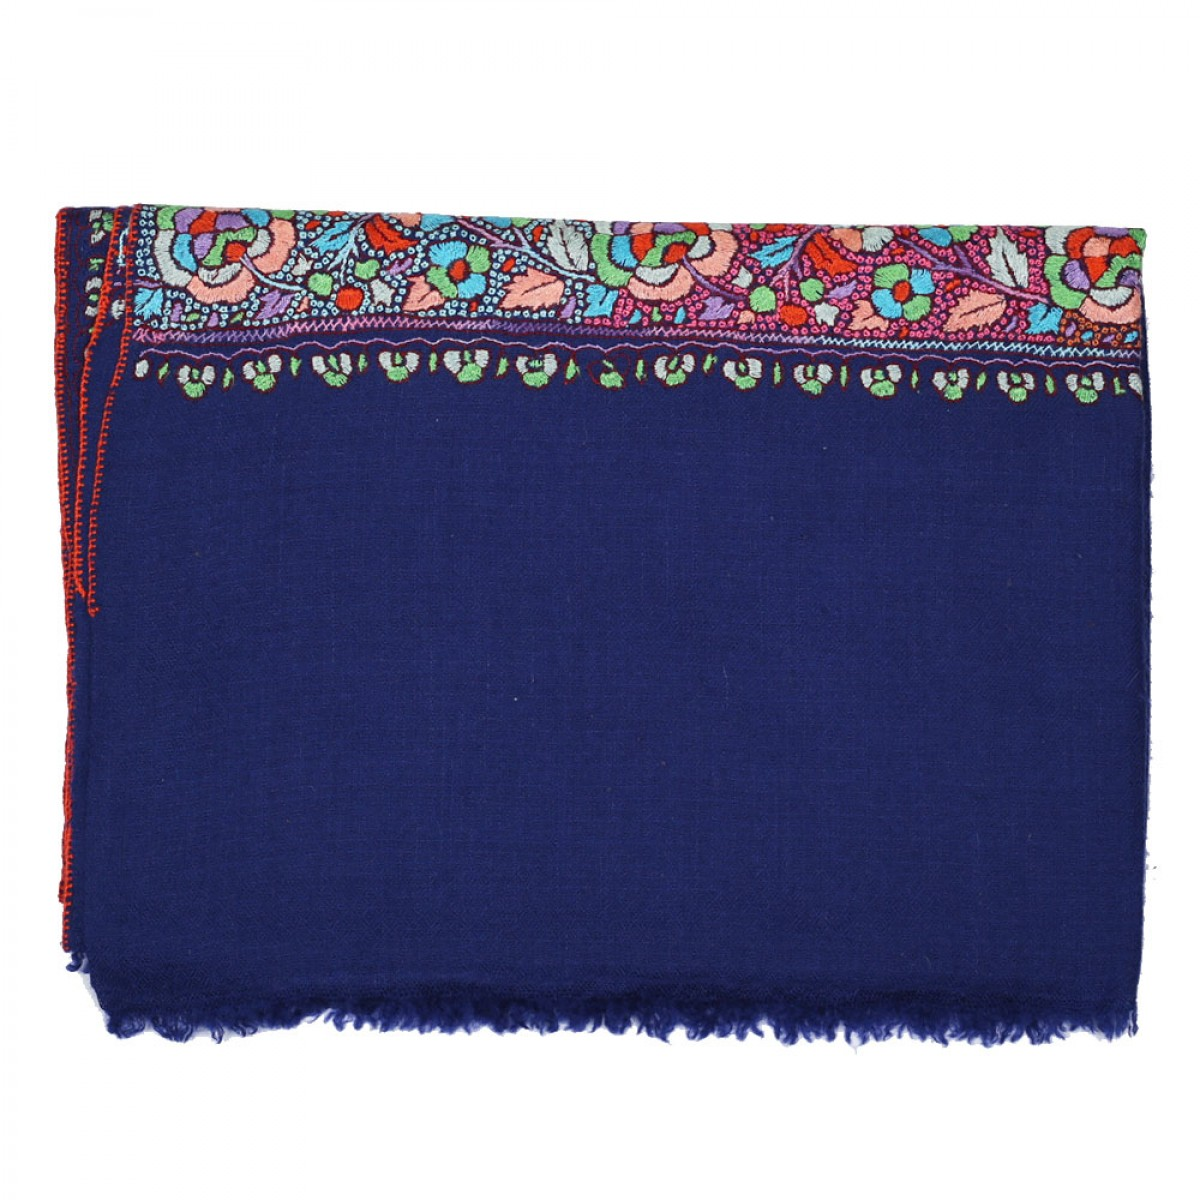 Embroidered Handloom Pashmina Stole - Midnight Blue